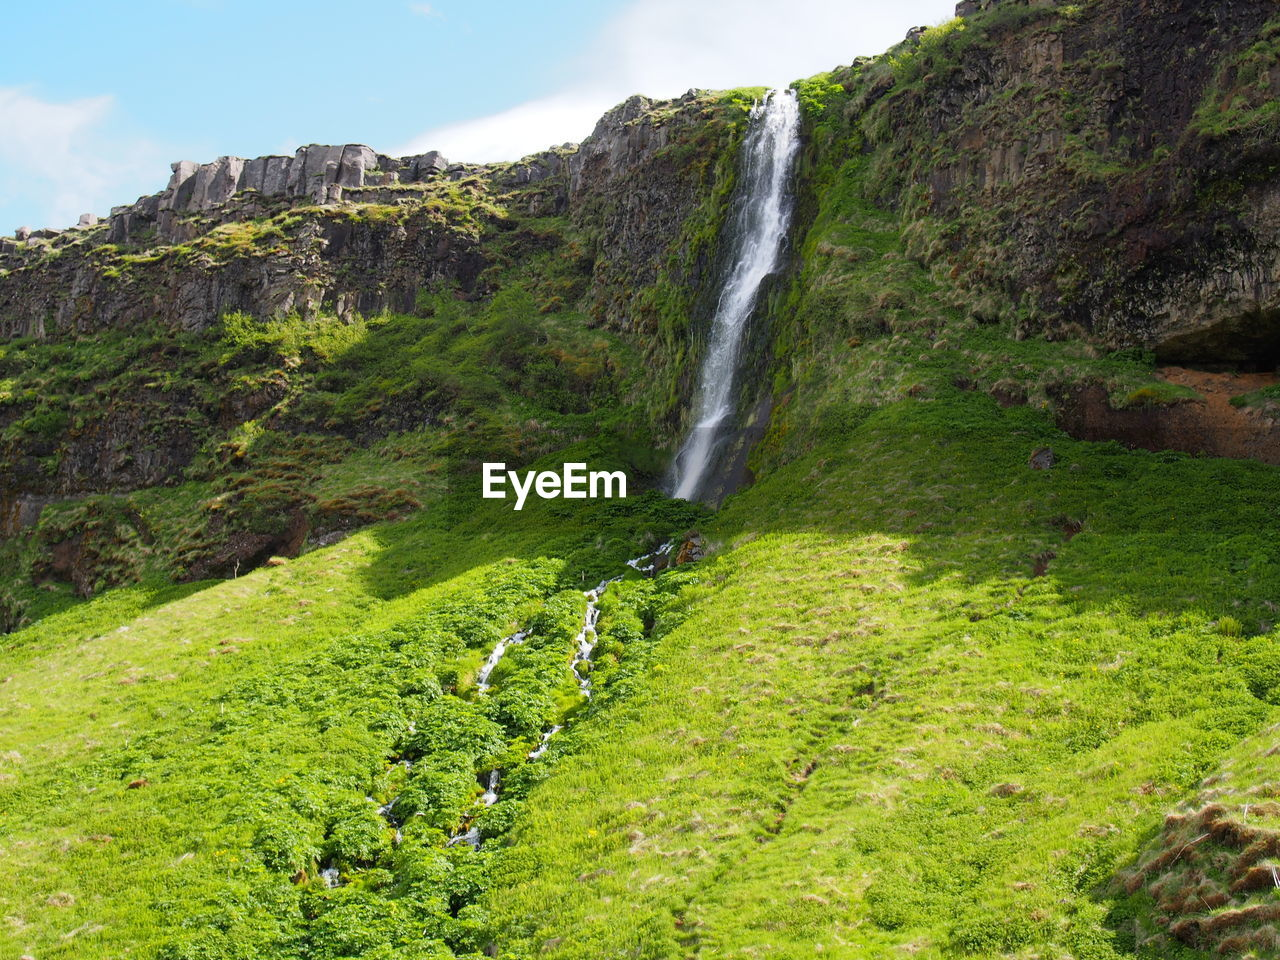 scenics - nature, beauty in nature, plant, land, nature, waterfall, environment, green color, motion, water, no people, day, sky, mountain, grass, growth, flowing water, landscape, tree, outdoors, flowing, formation